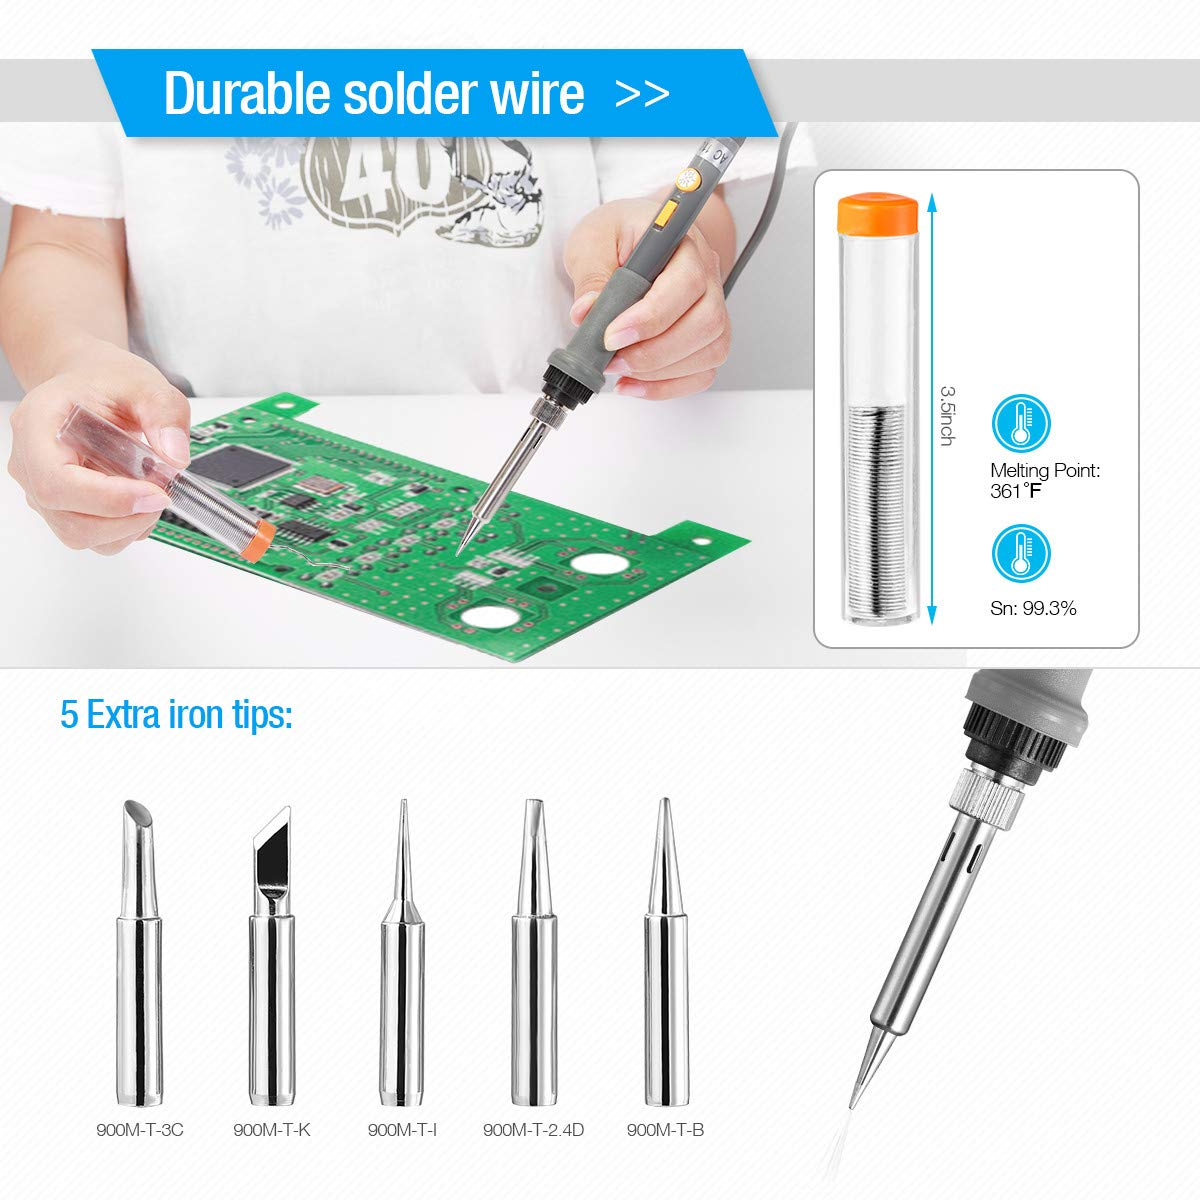 Powerextra 18 in 1 Soldering Iron Kit, 60W 110V Adjustable Temperature Welding Tool with 6 pcs Iron Tips, Solder Sucker, Soldering Iron Stand, Solder Wire, Tweezer